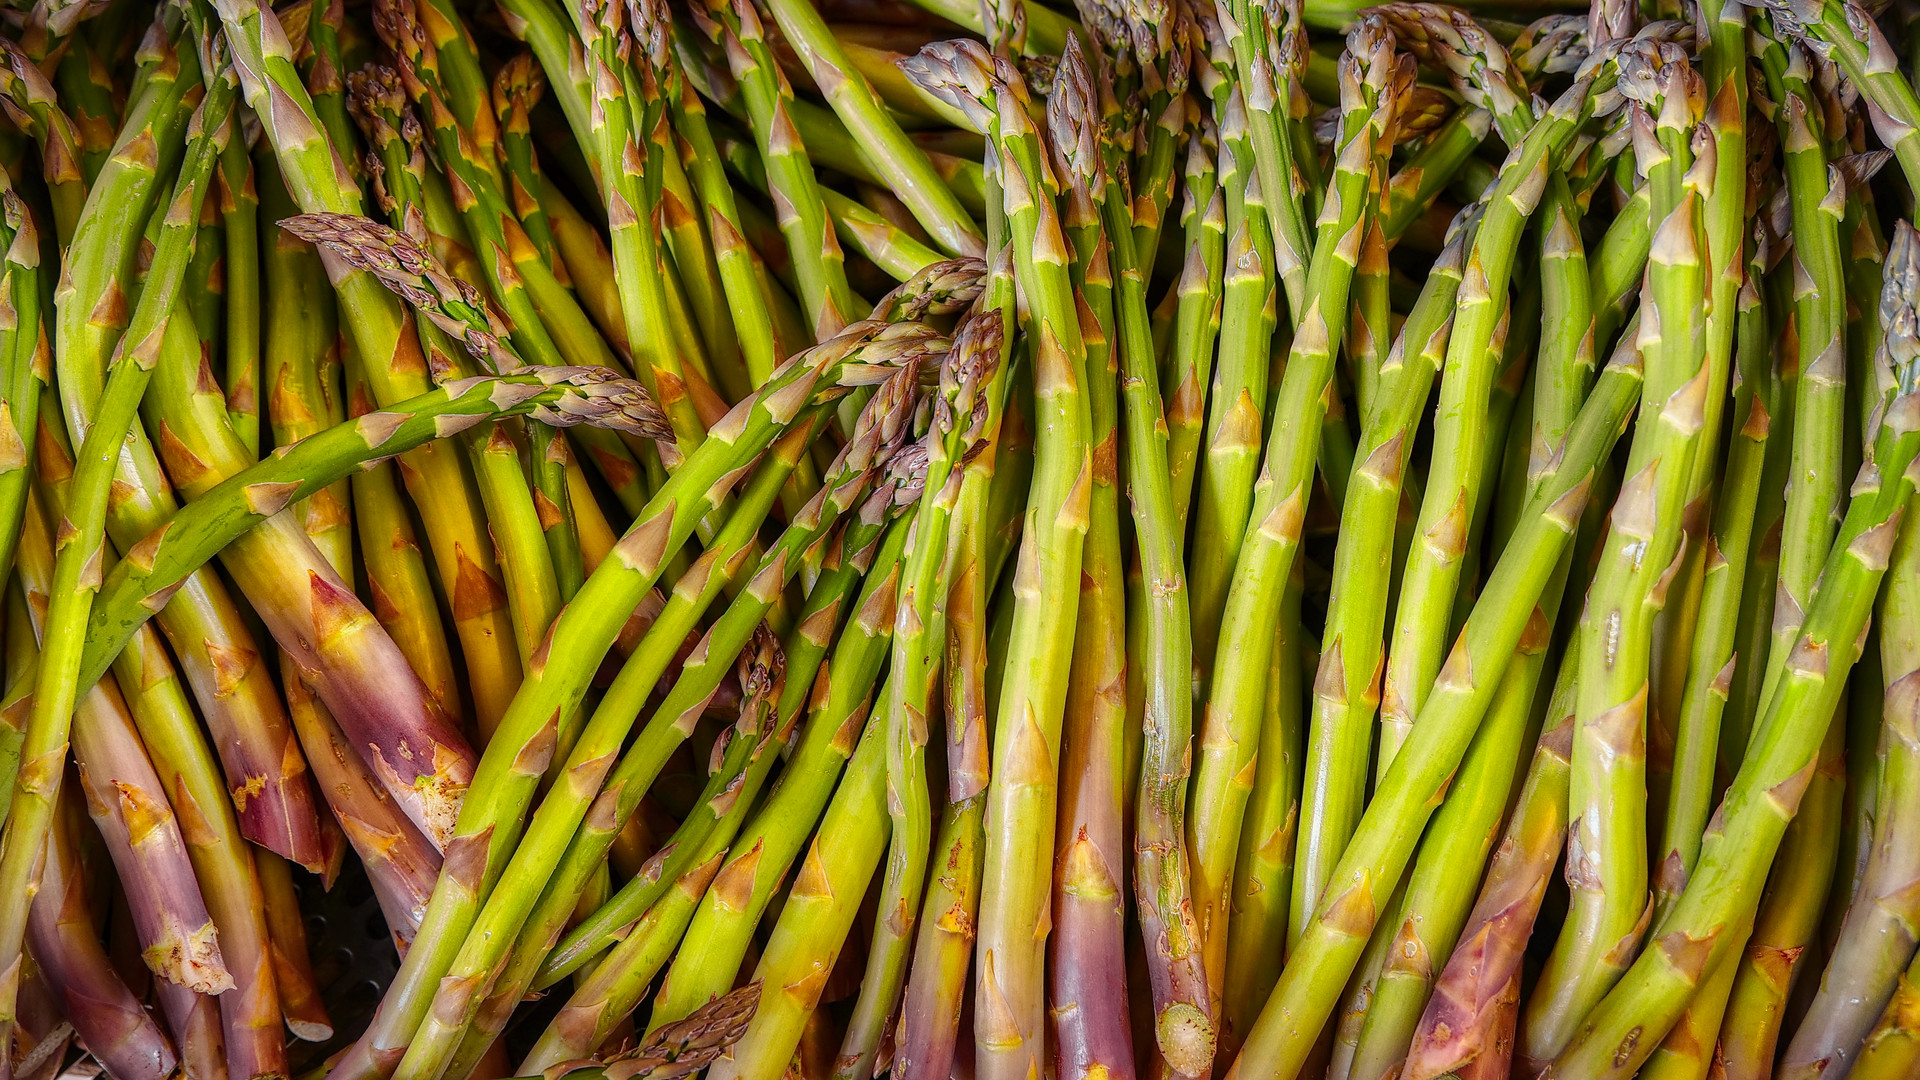 Spring - Freshly Cut Sussex Asparagus